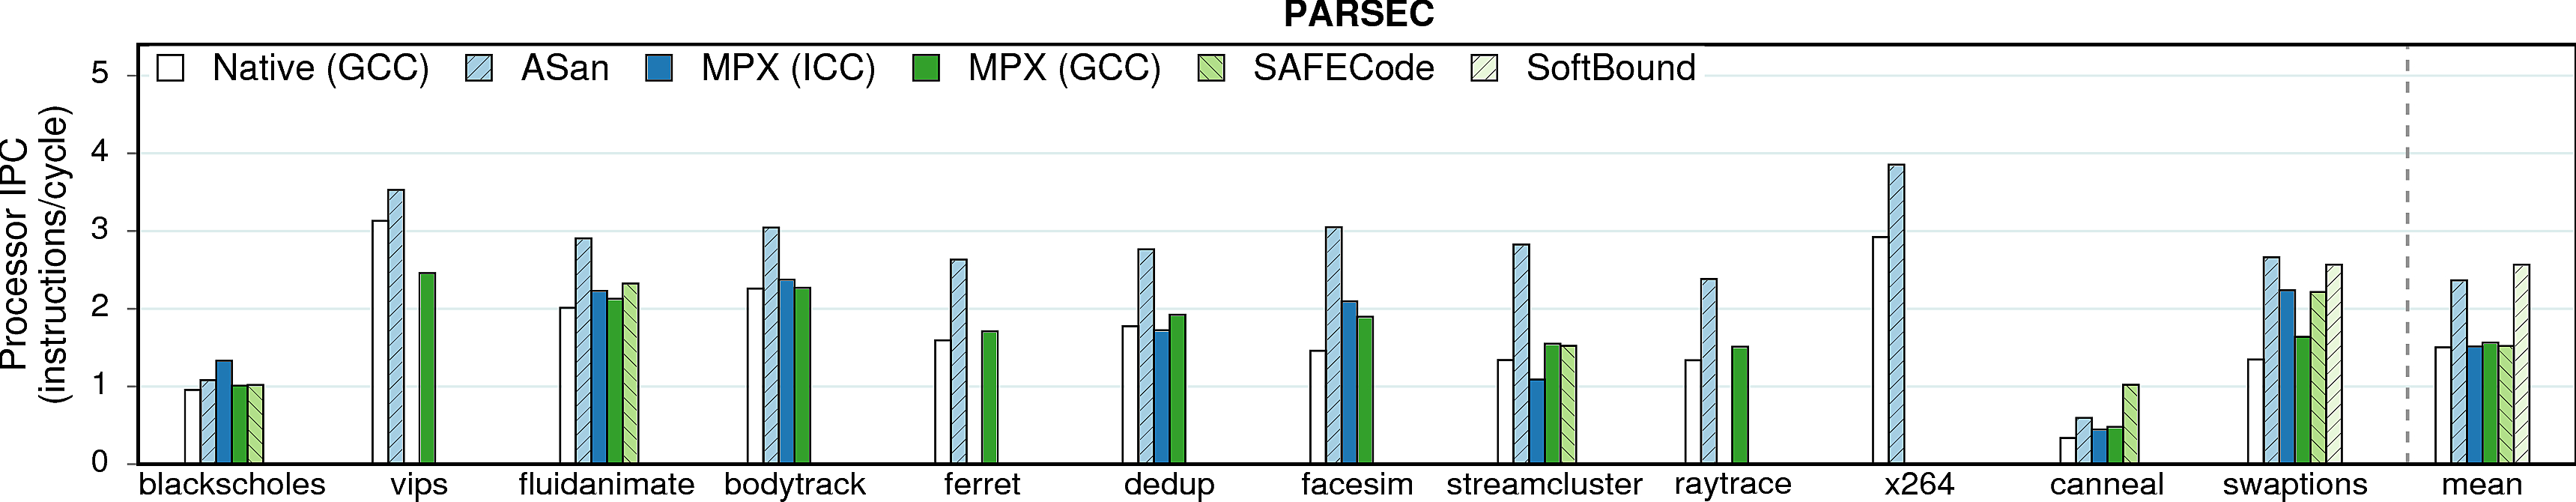 IPC of PARSEC